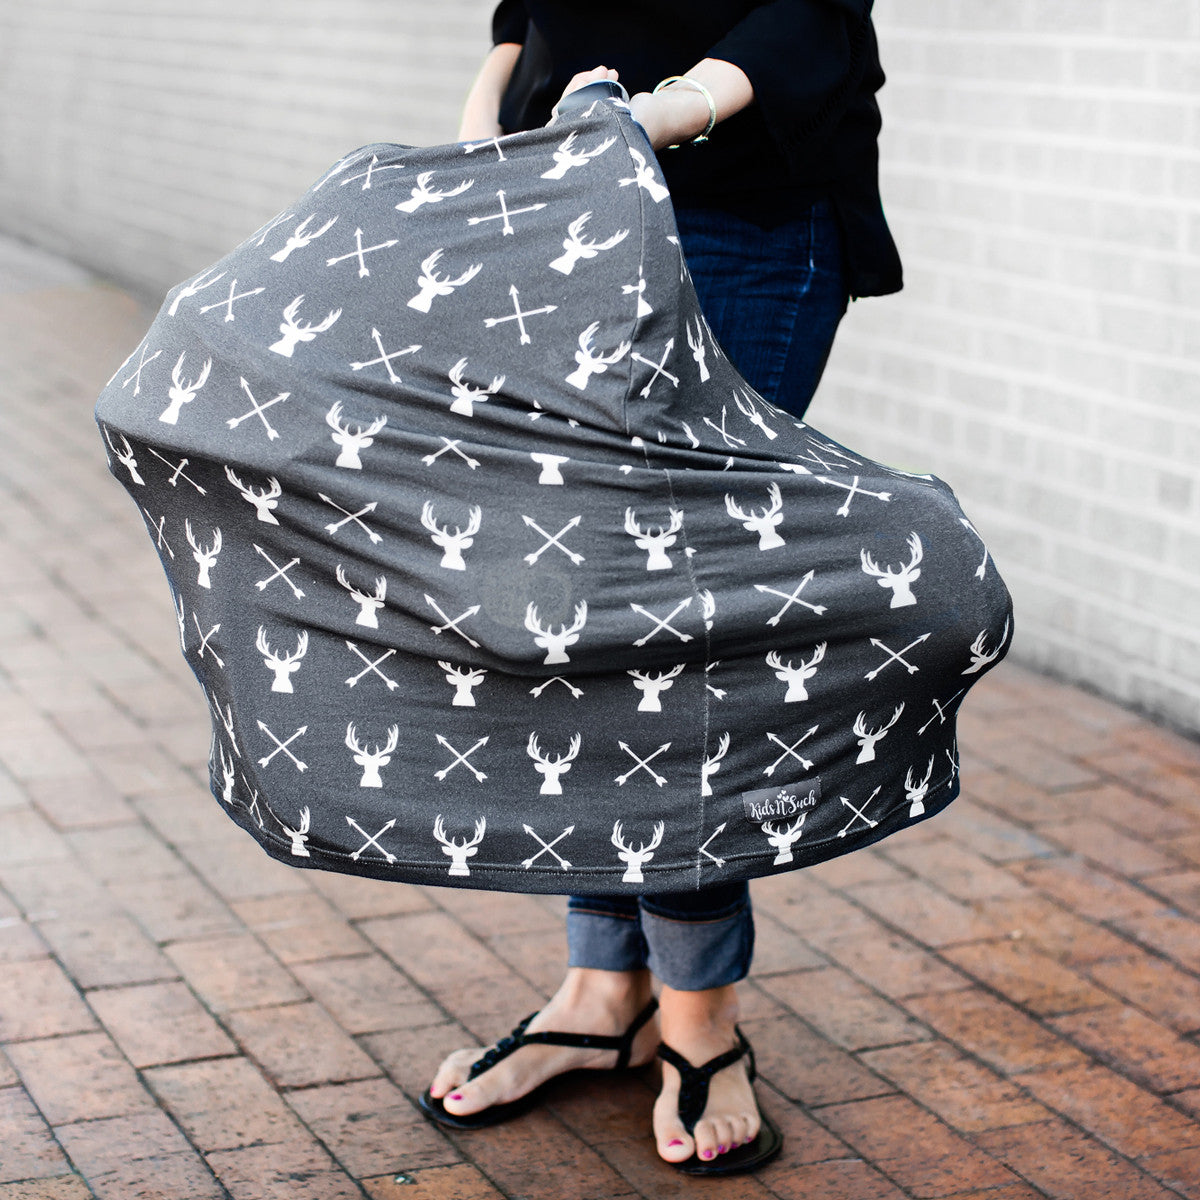 3 In 1 Car Seat Canopy Nursing Cover Shopping Cart Cover In